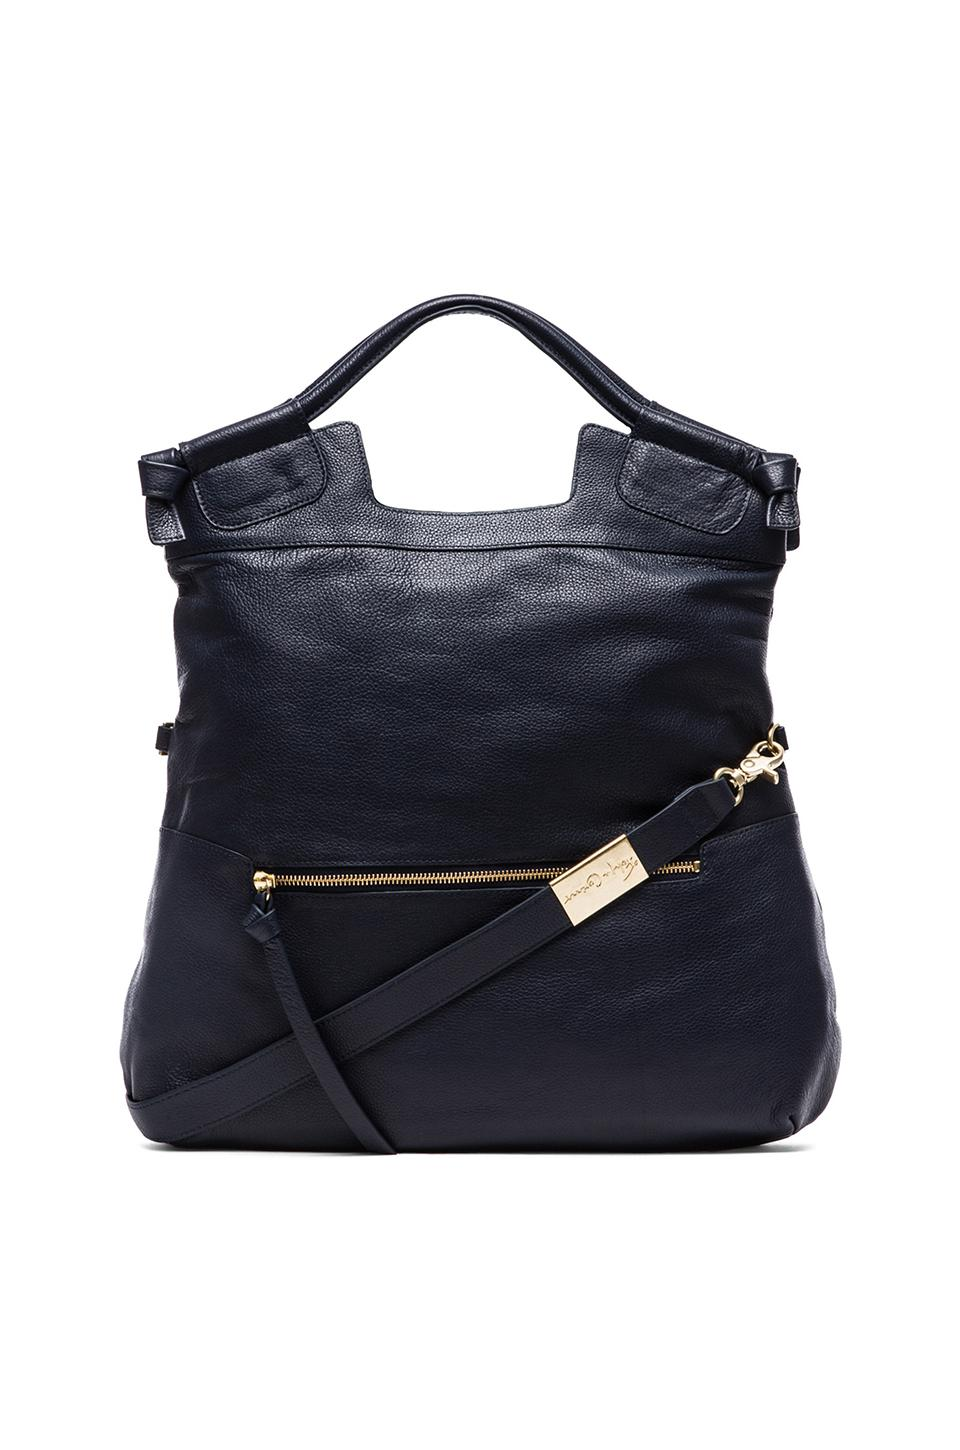 Foley + Corinna Mid City Tote in Navy